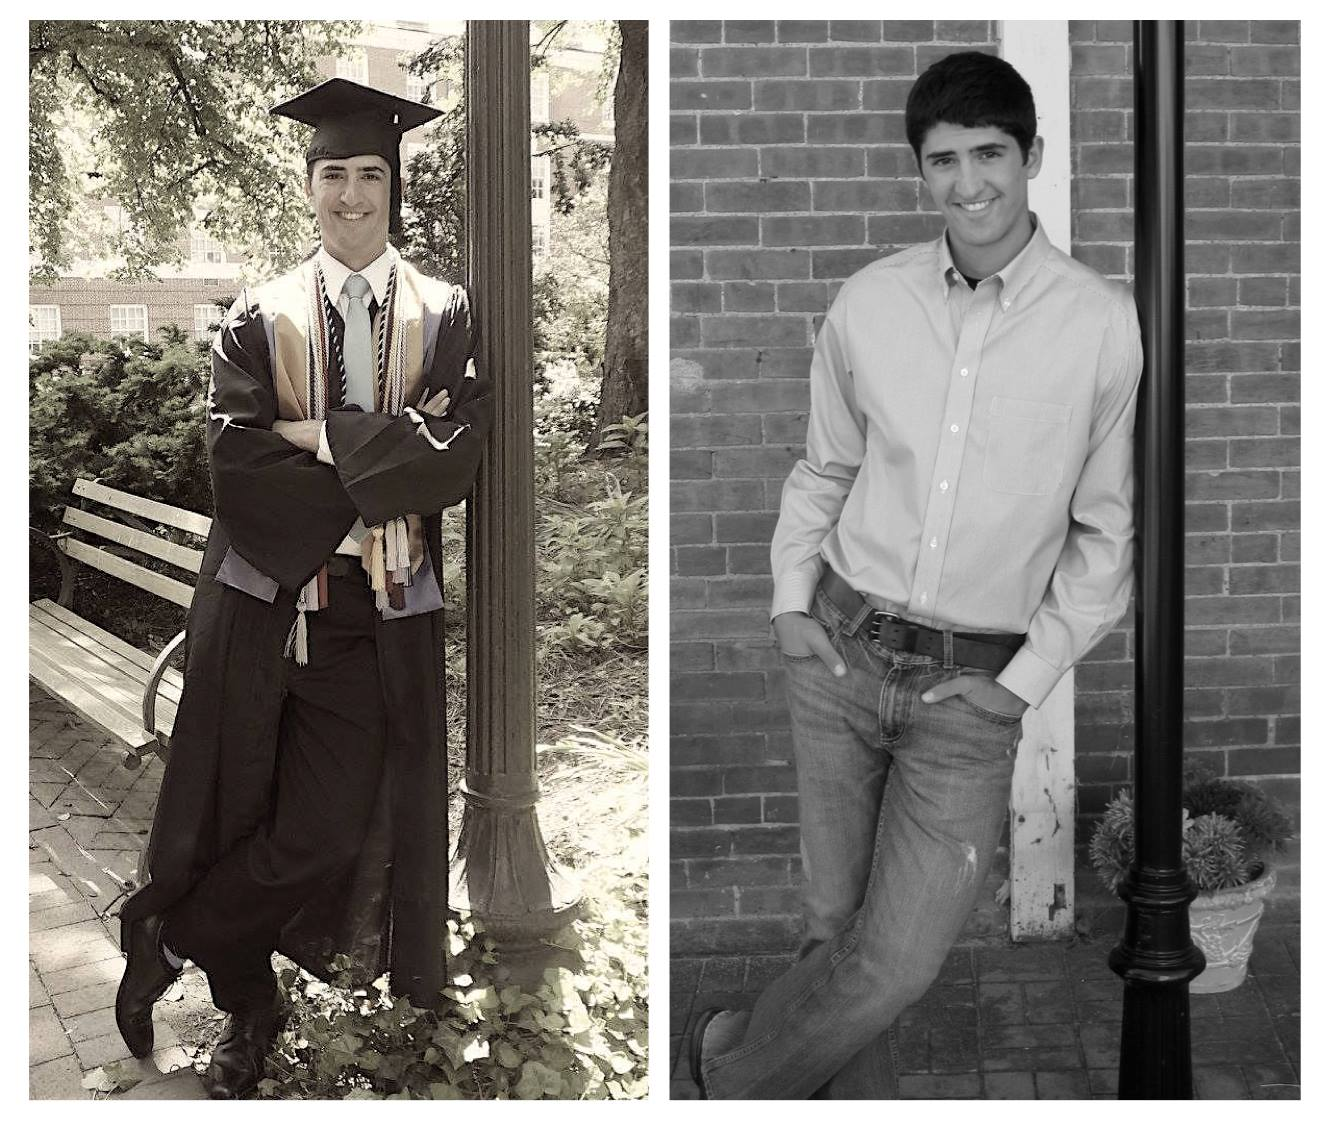 College on the left, high school on the right.